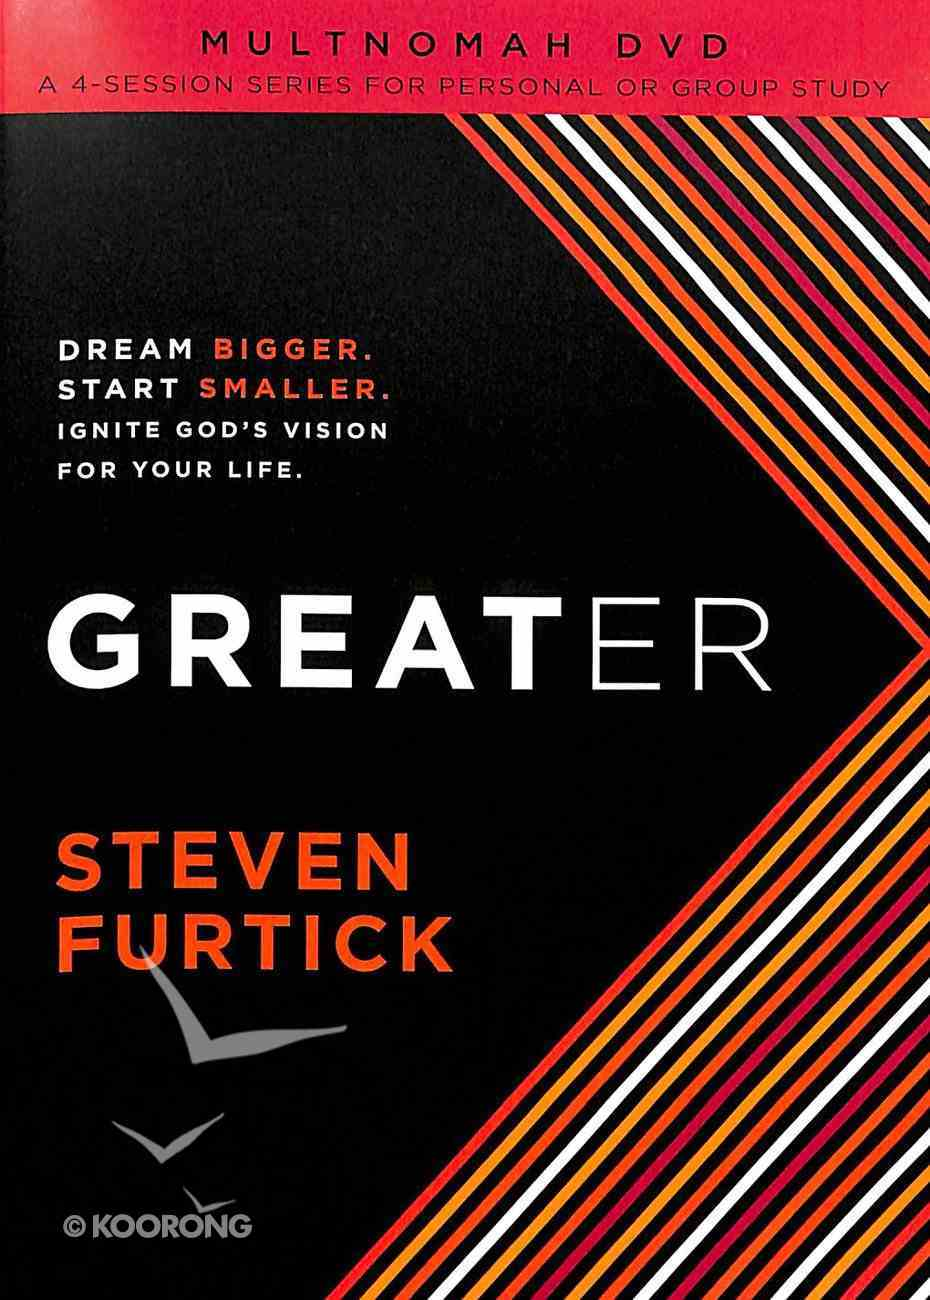 Greater (Dvd And Participants Guide) Pack